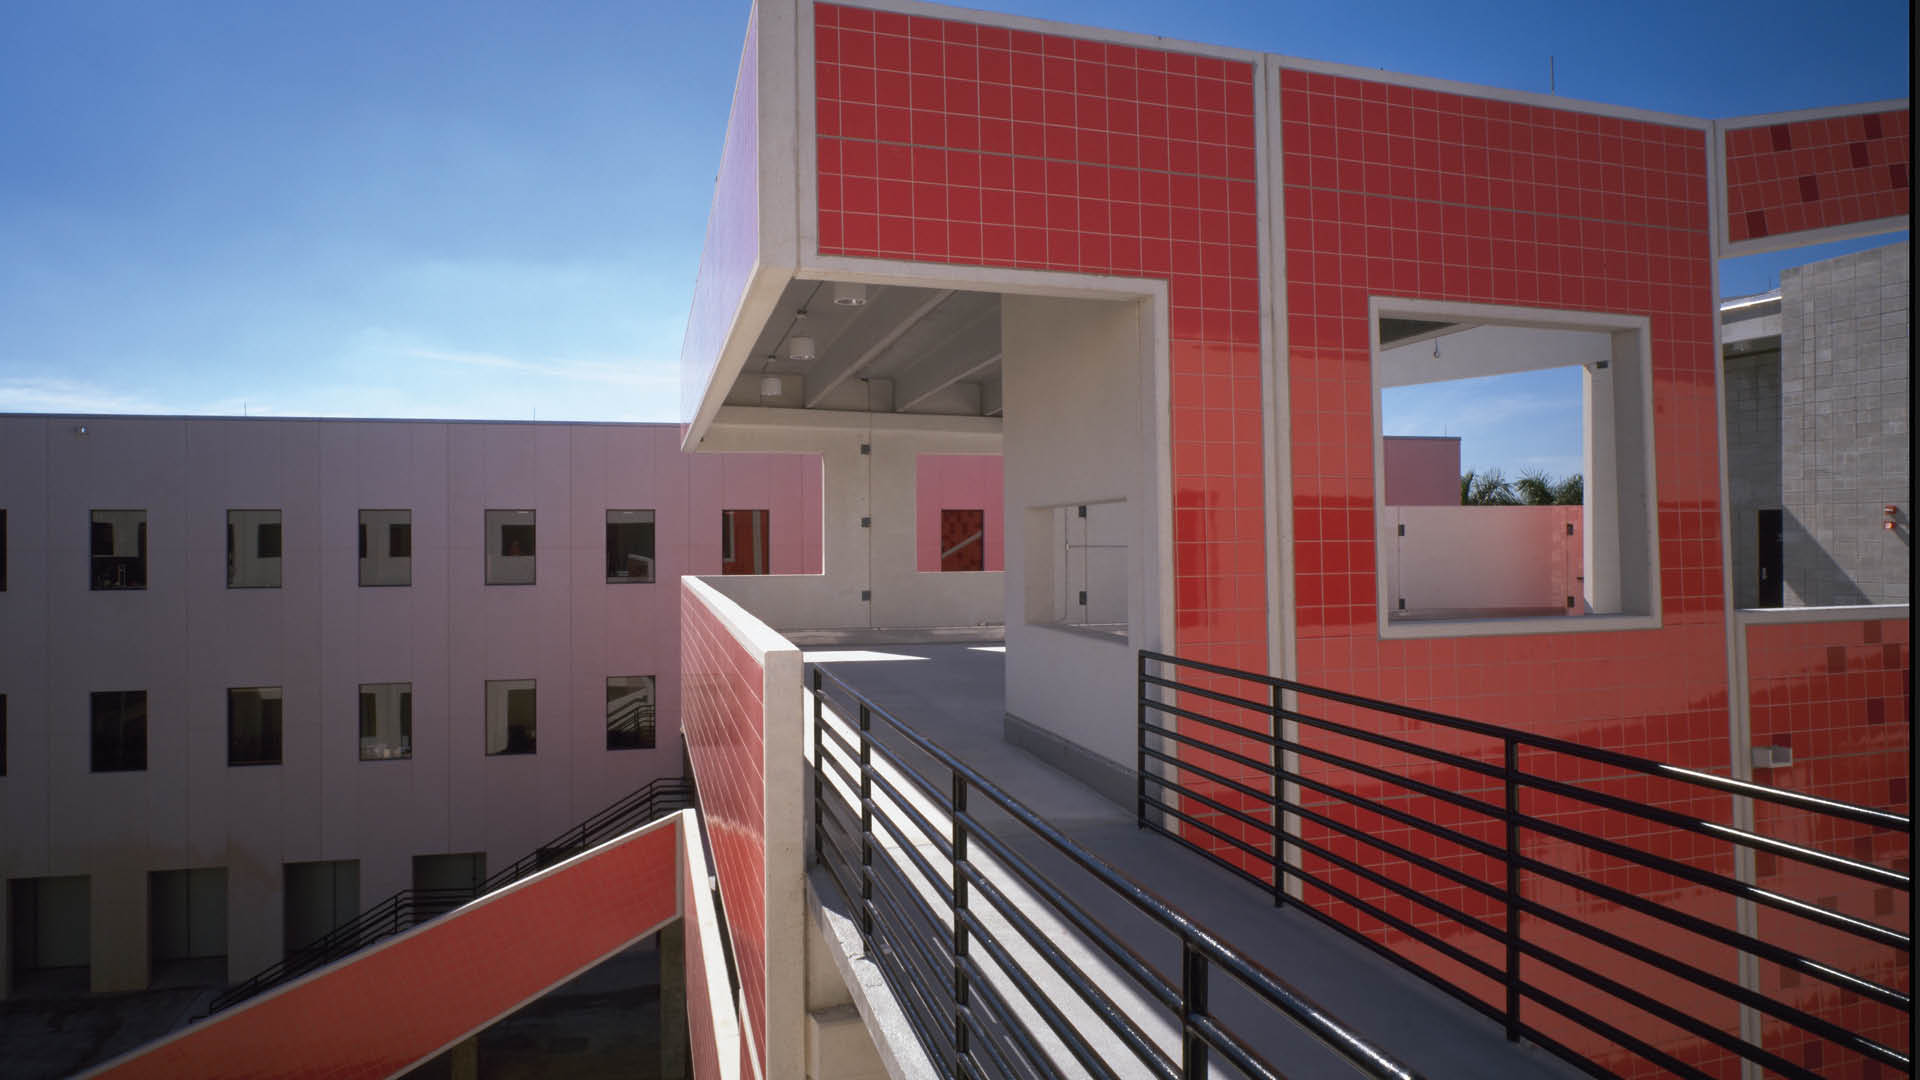 florida international university school of architecture5